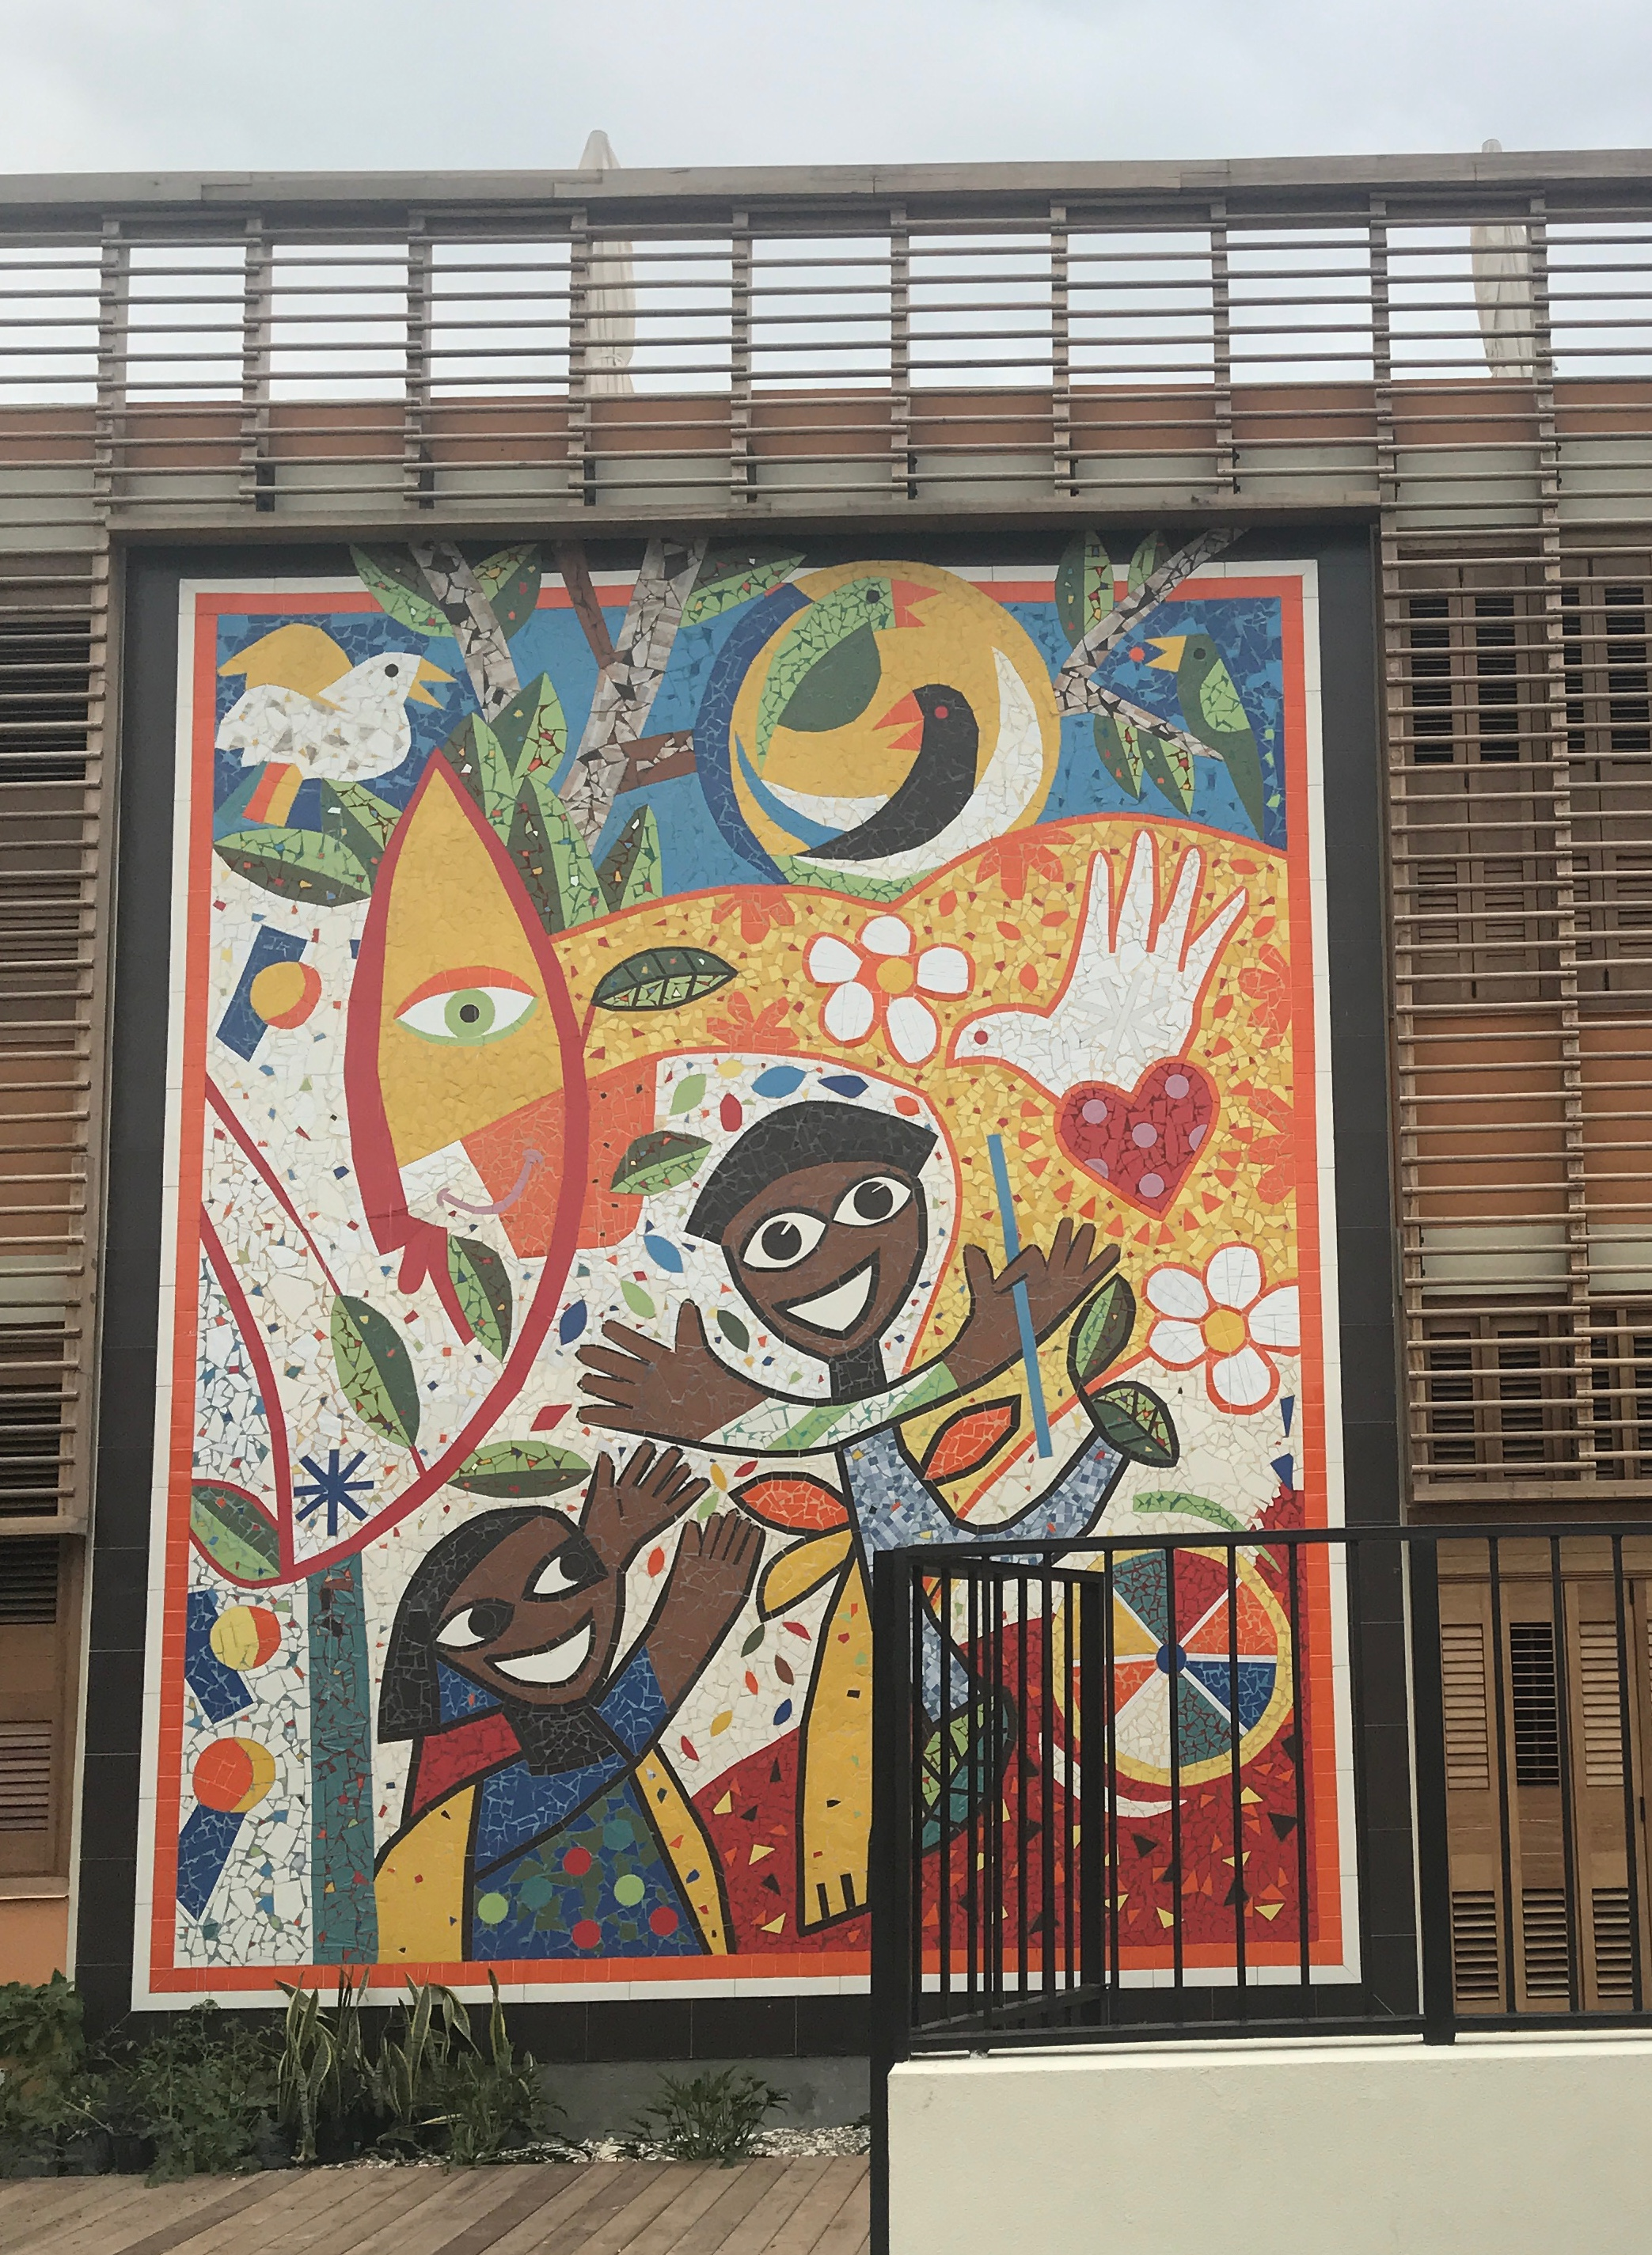 Completed mural welcomes visitors